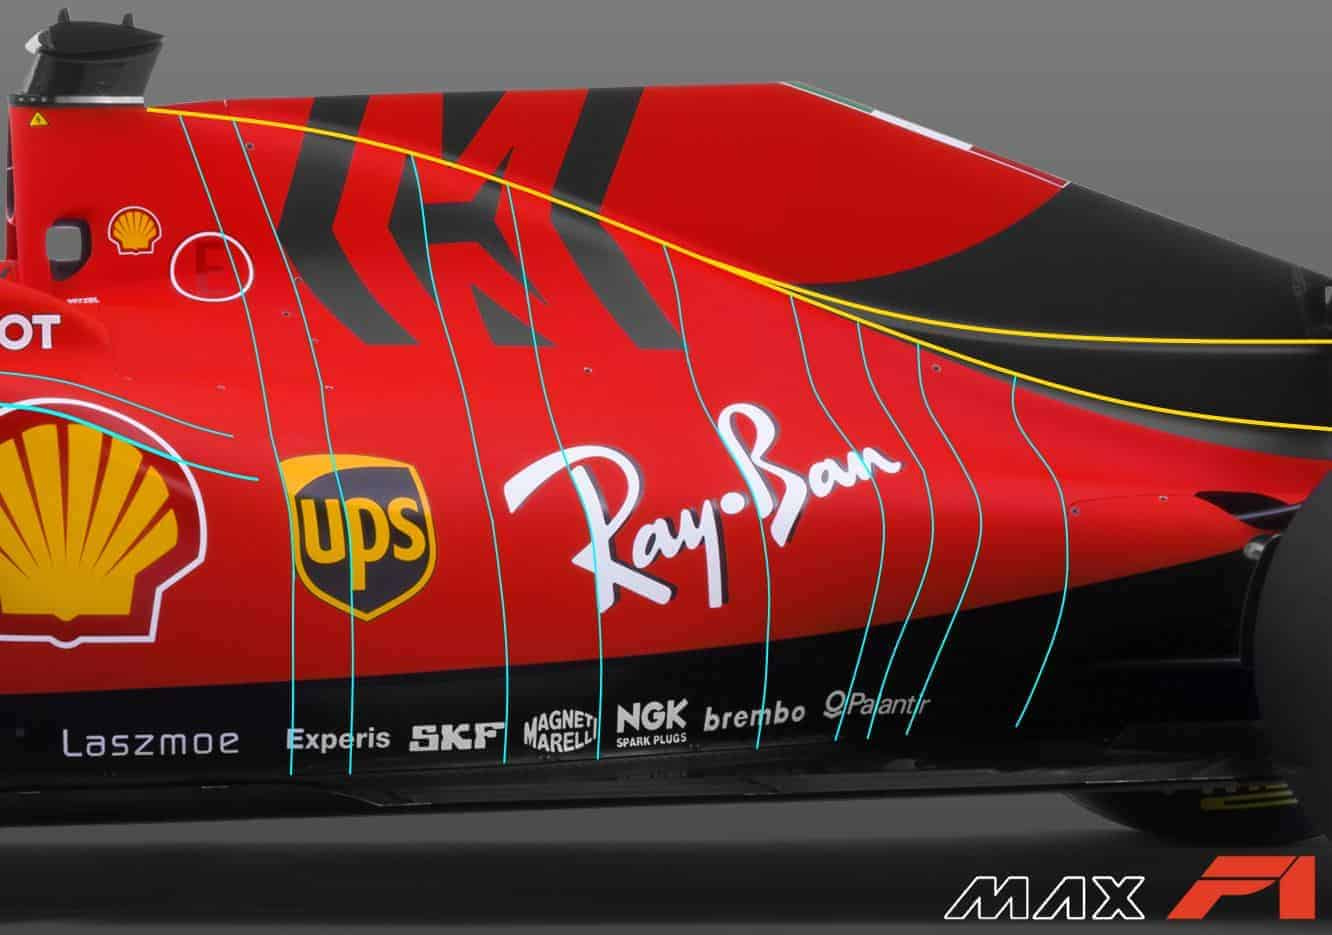 2019 F1 Ferrari SF90 engine cover sidepod side view Photo Ferrari Edited by MAXF1net